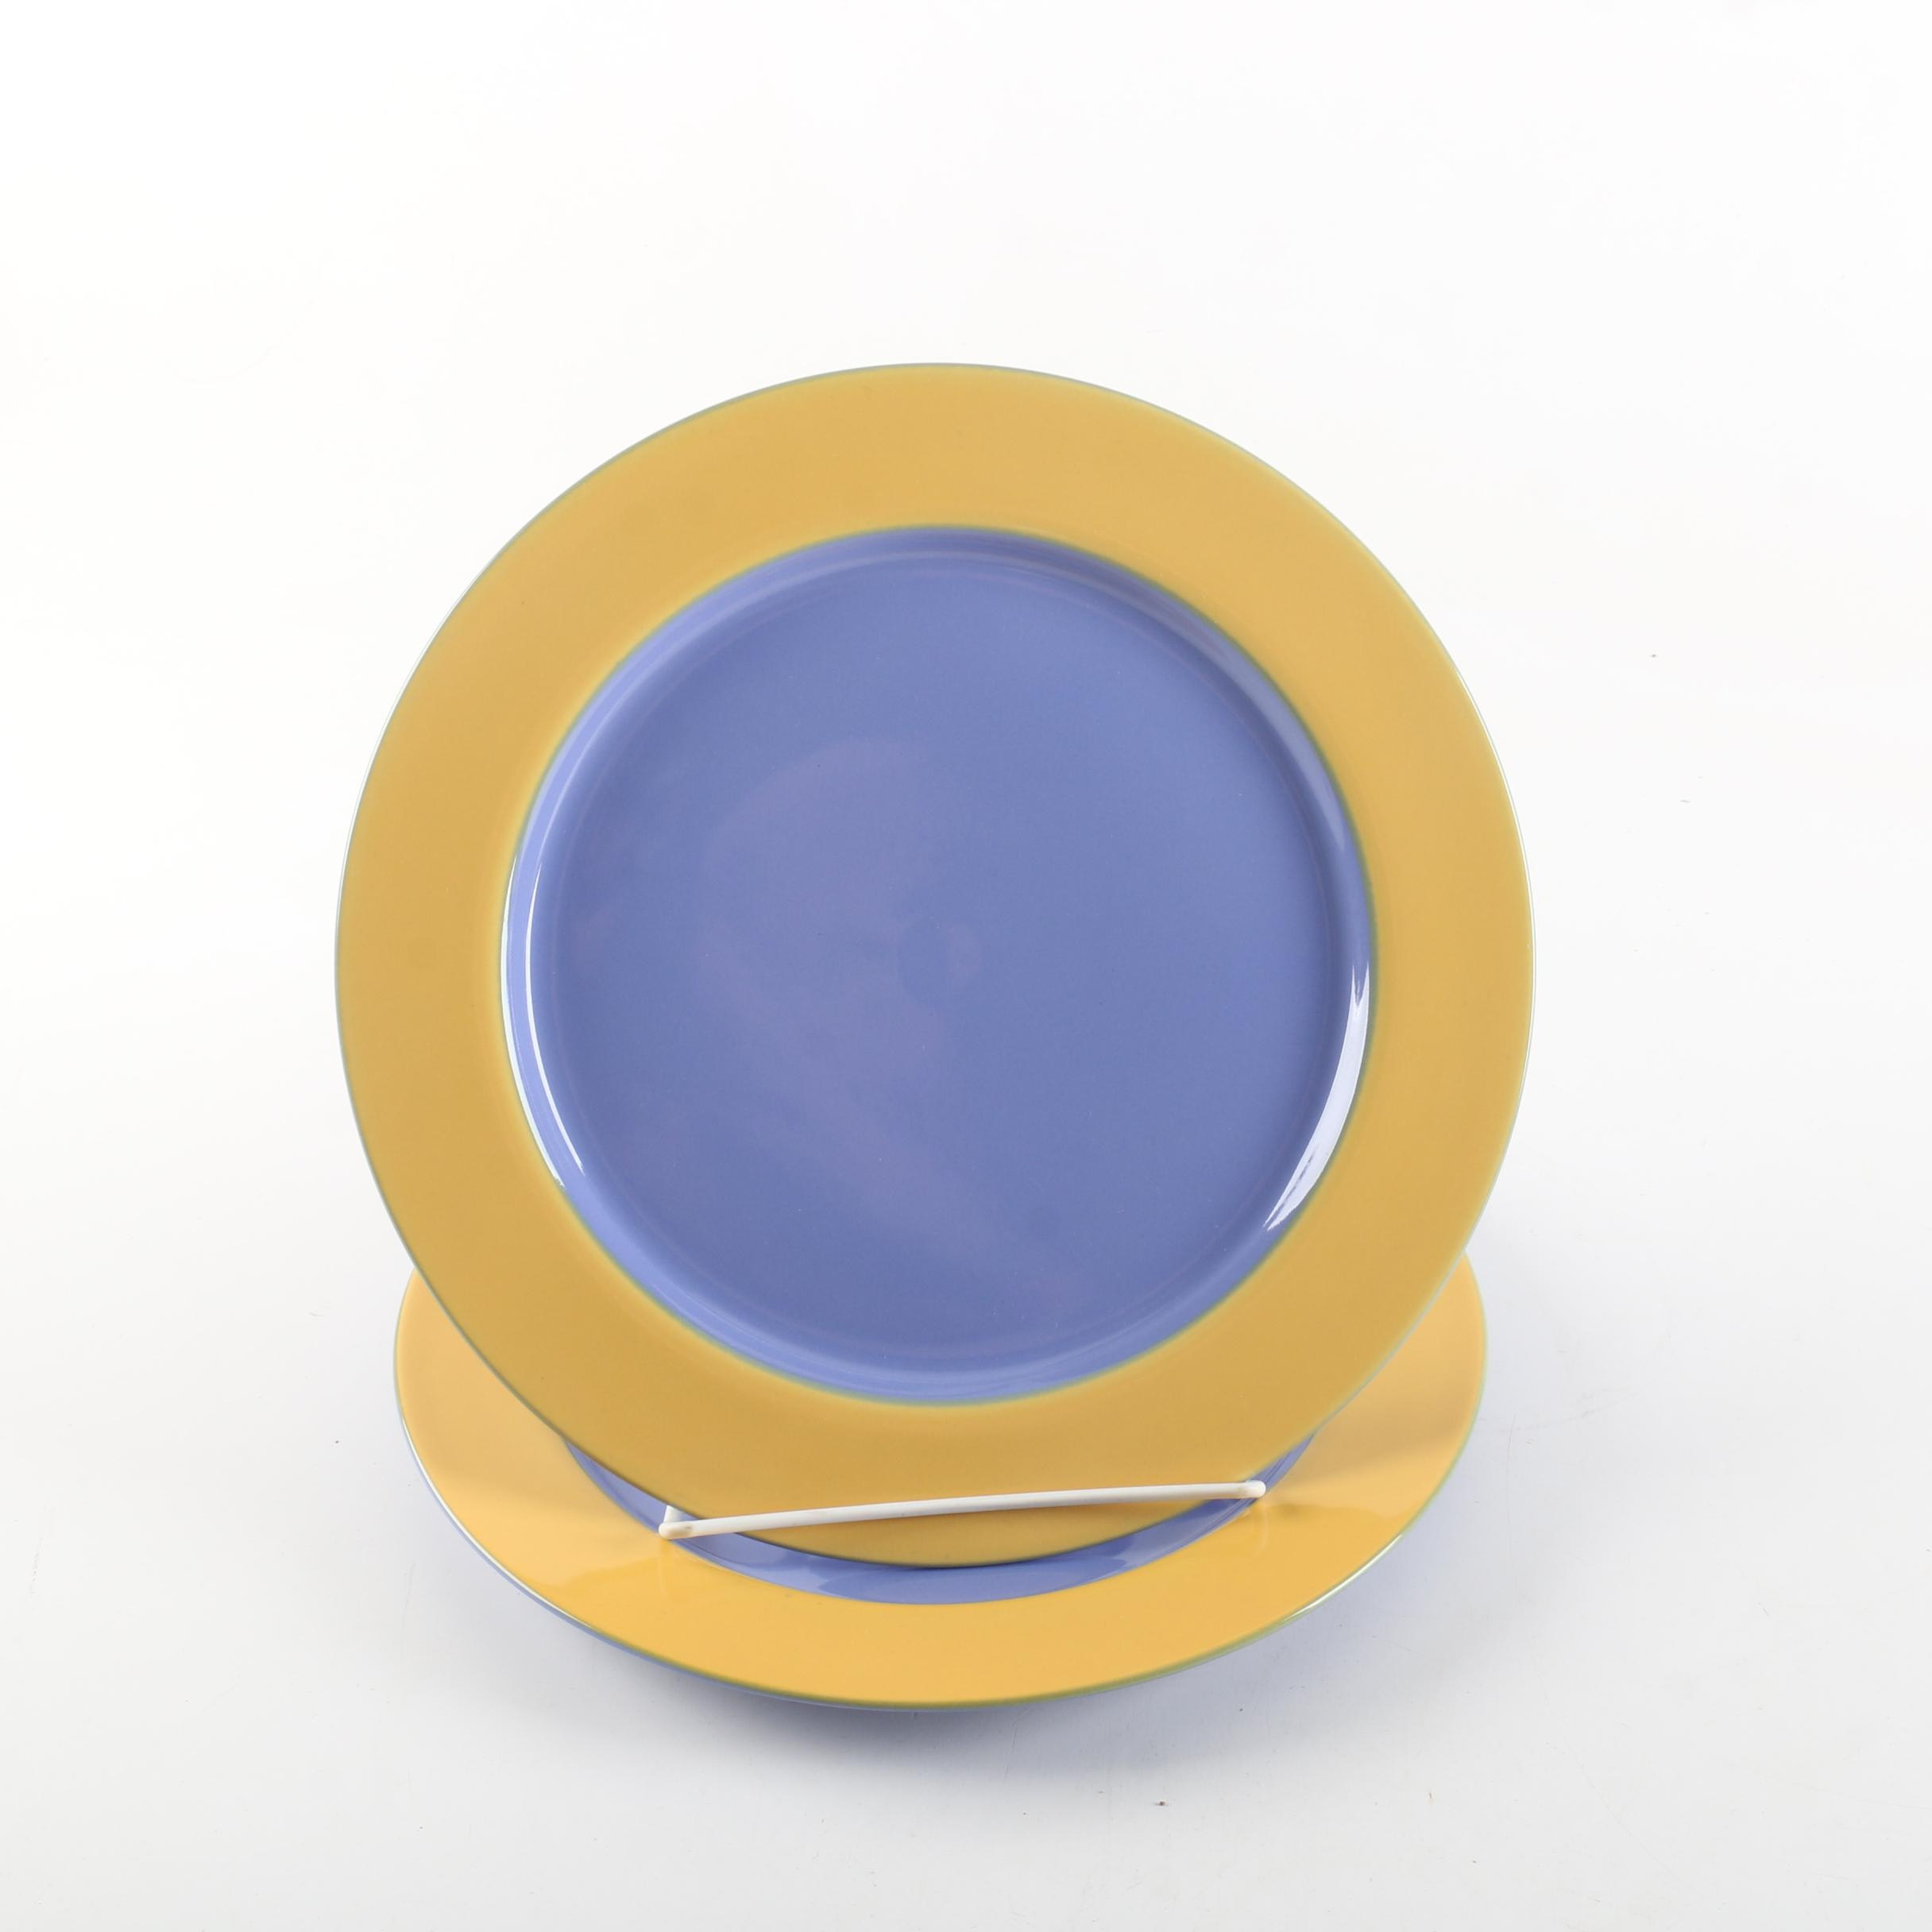 "Lindt Stymeist ""Colorways"" Ceramic Plates"